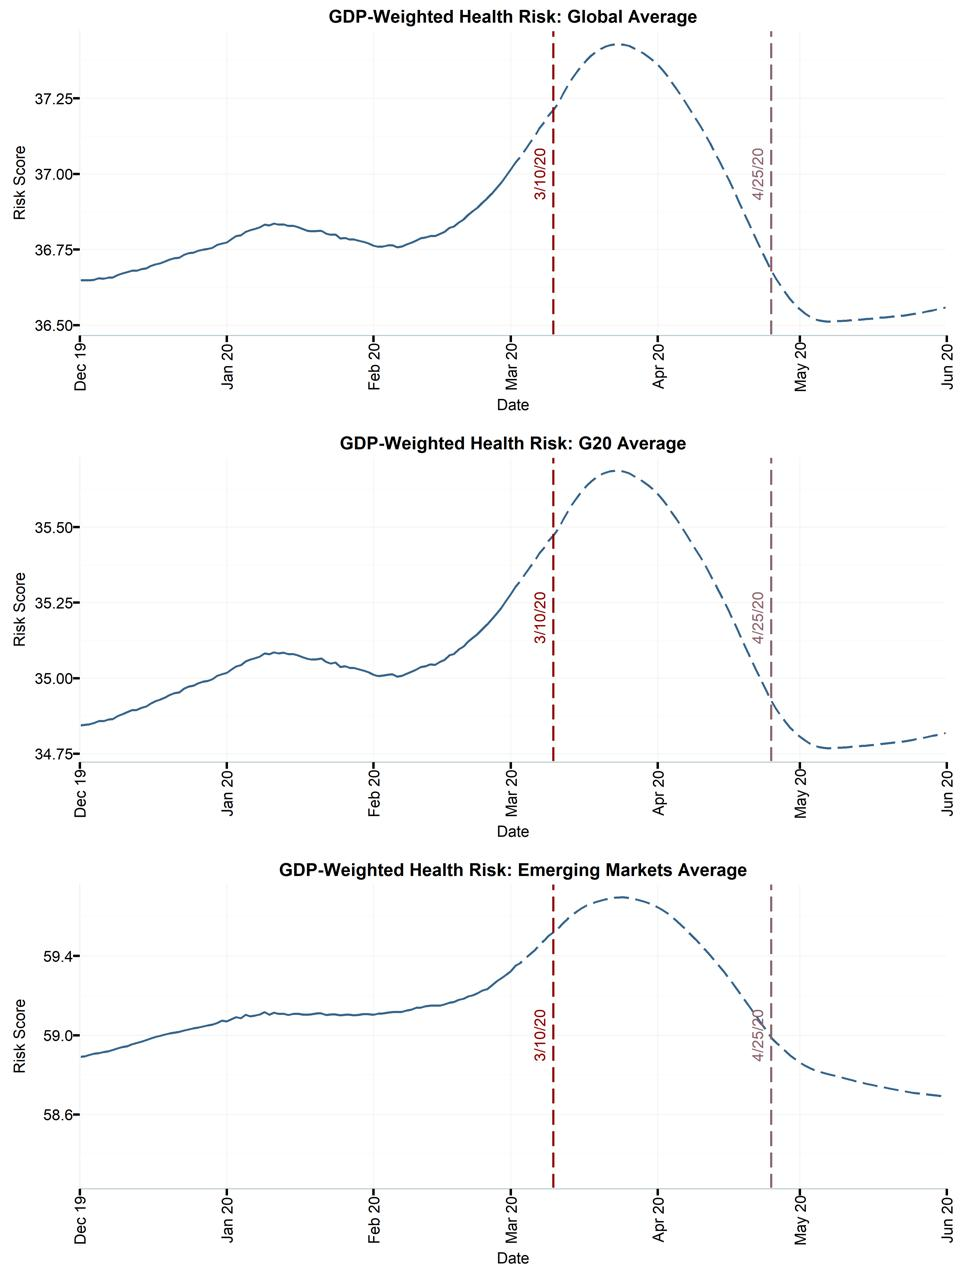 GDP-Weighted Health Risk: Global Average